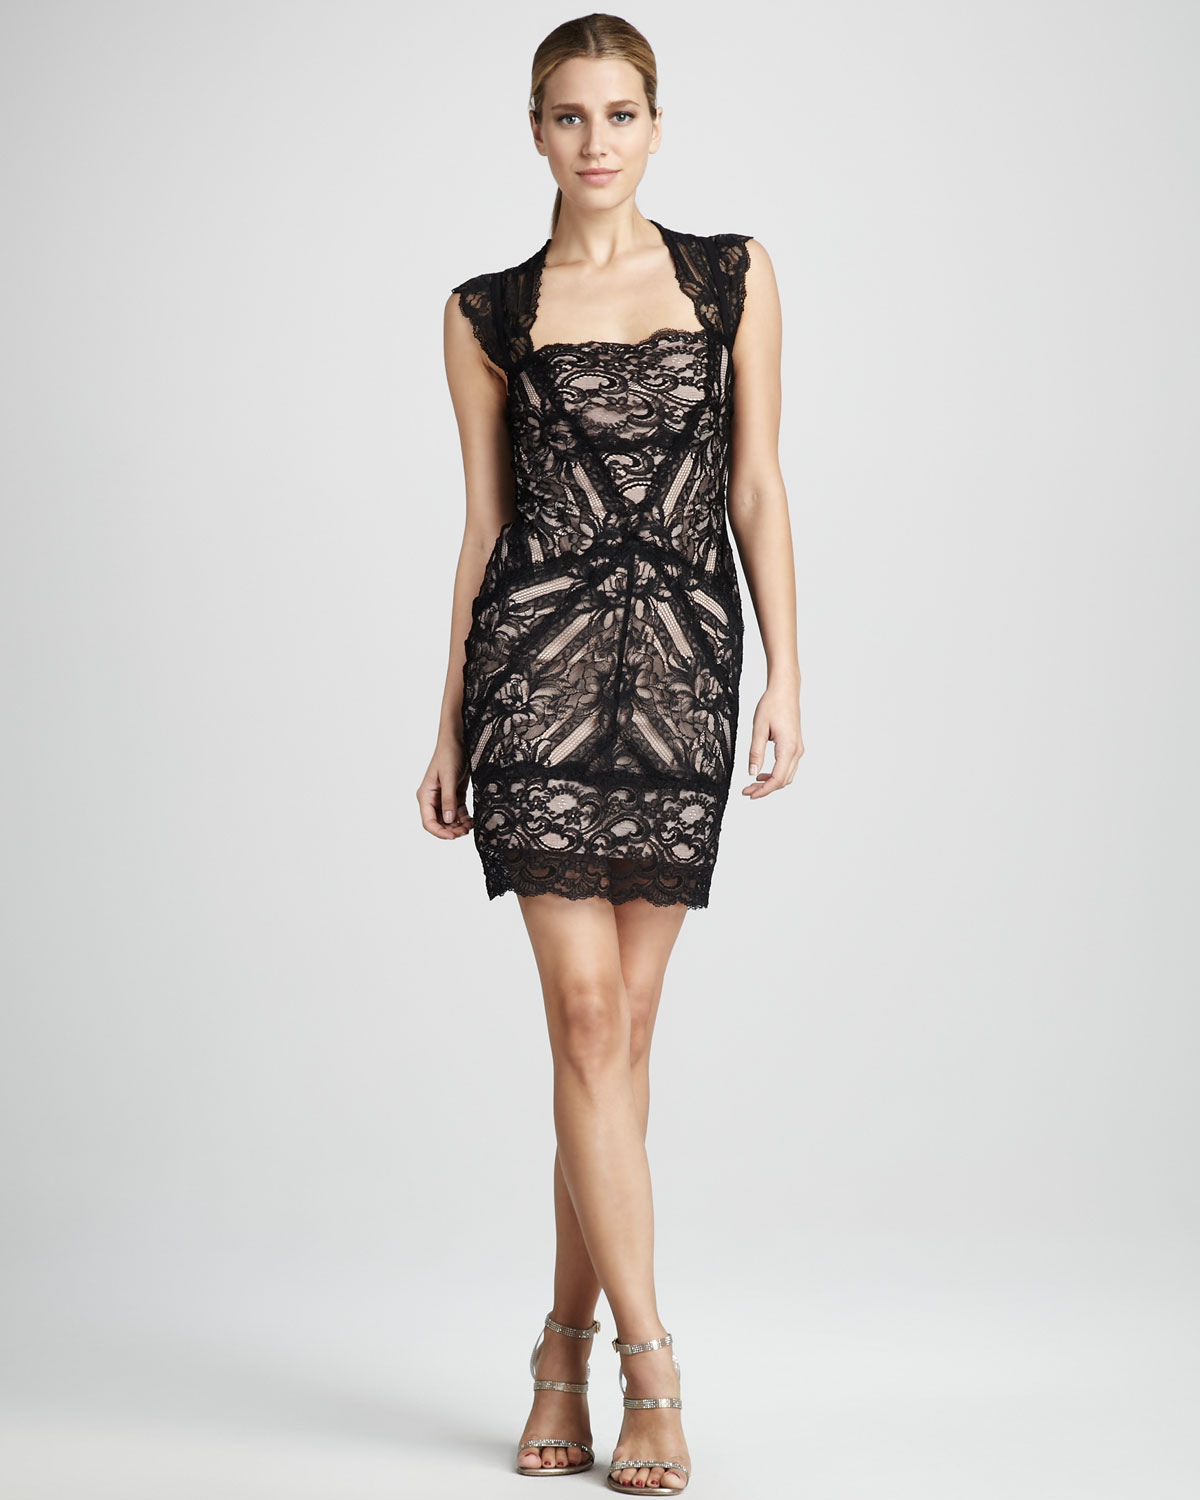 Lyst Nicole Miller Stretch Lace Cocktail Dress In Metallic